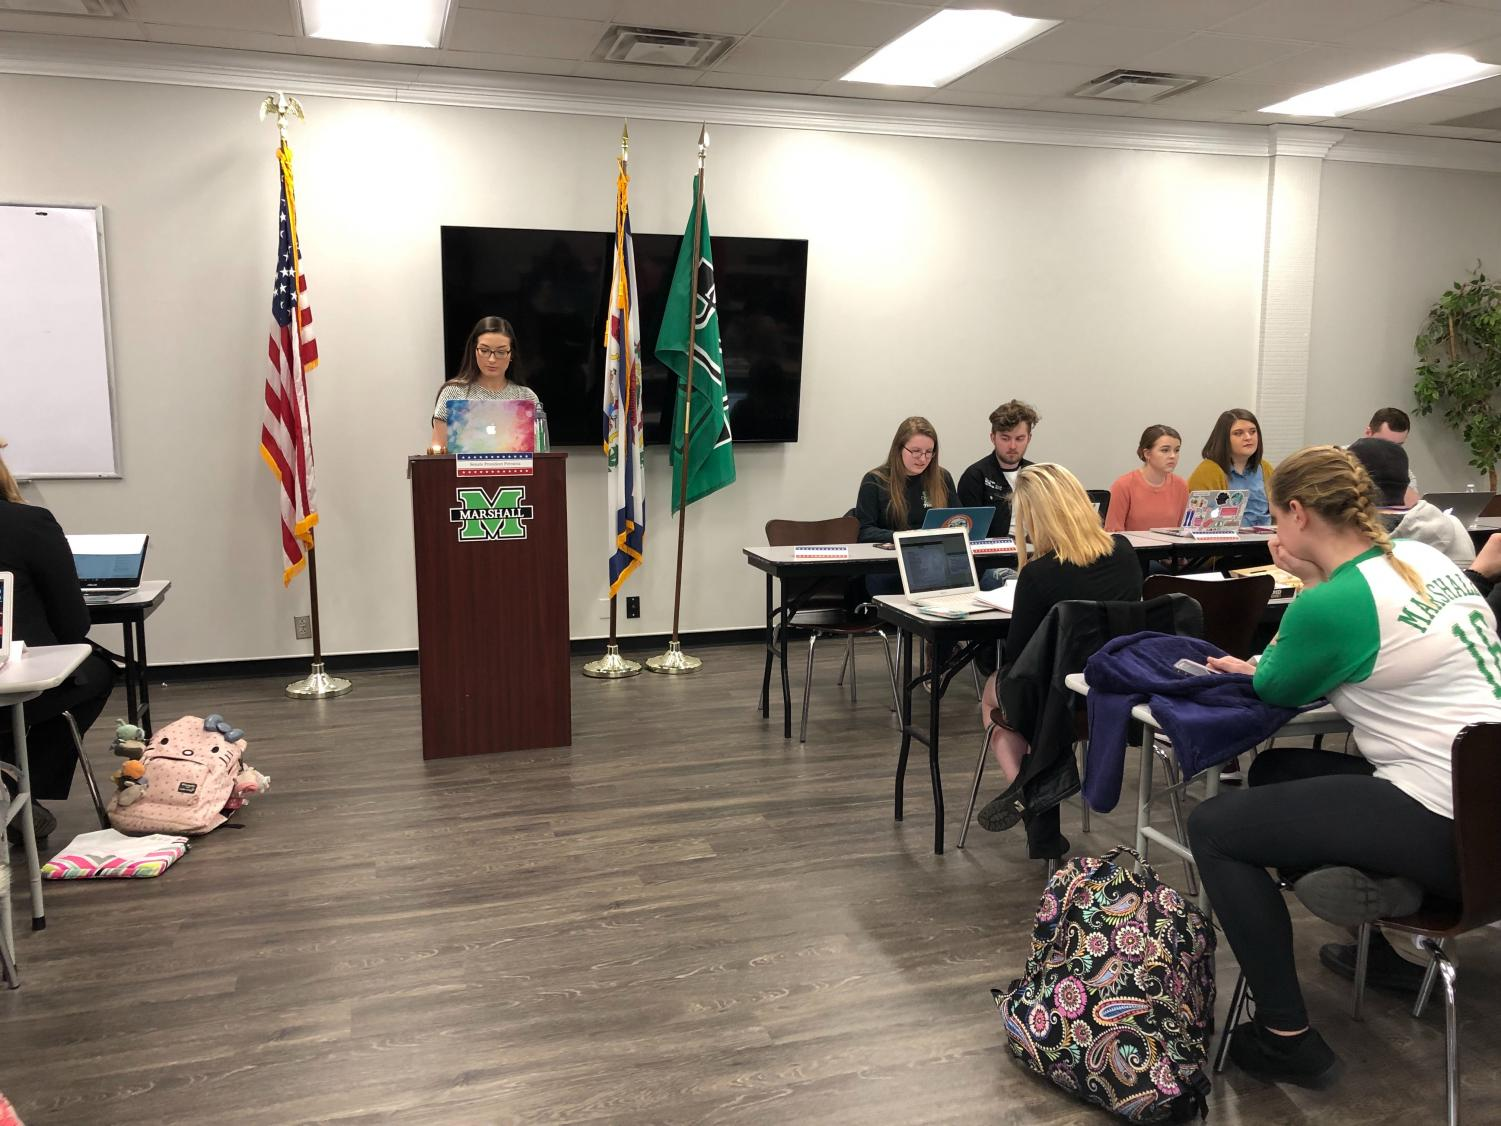 Parliamentarian Jo Tremmel calls roll-call during a student senate meeting Tuesday, March 12 in the Memorial Student Center.